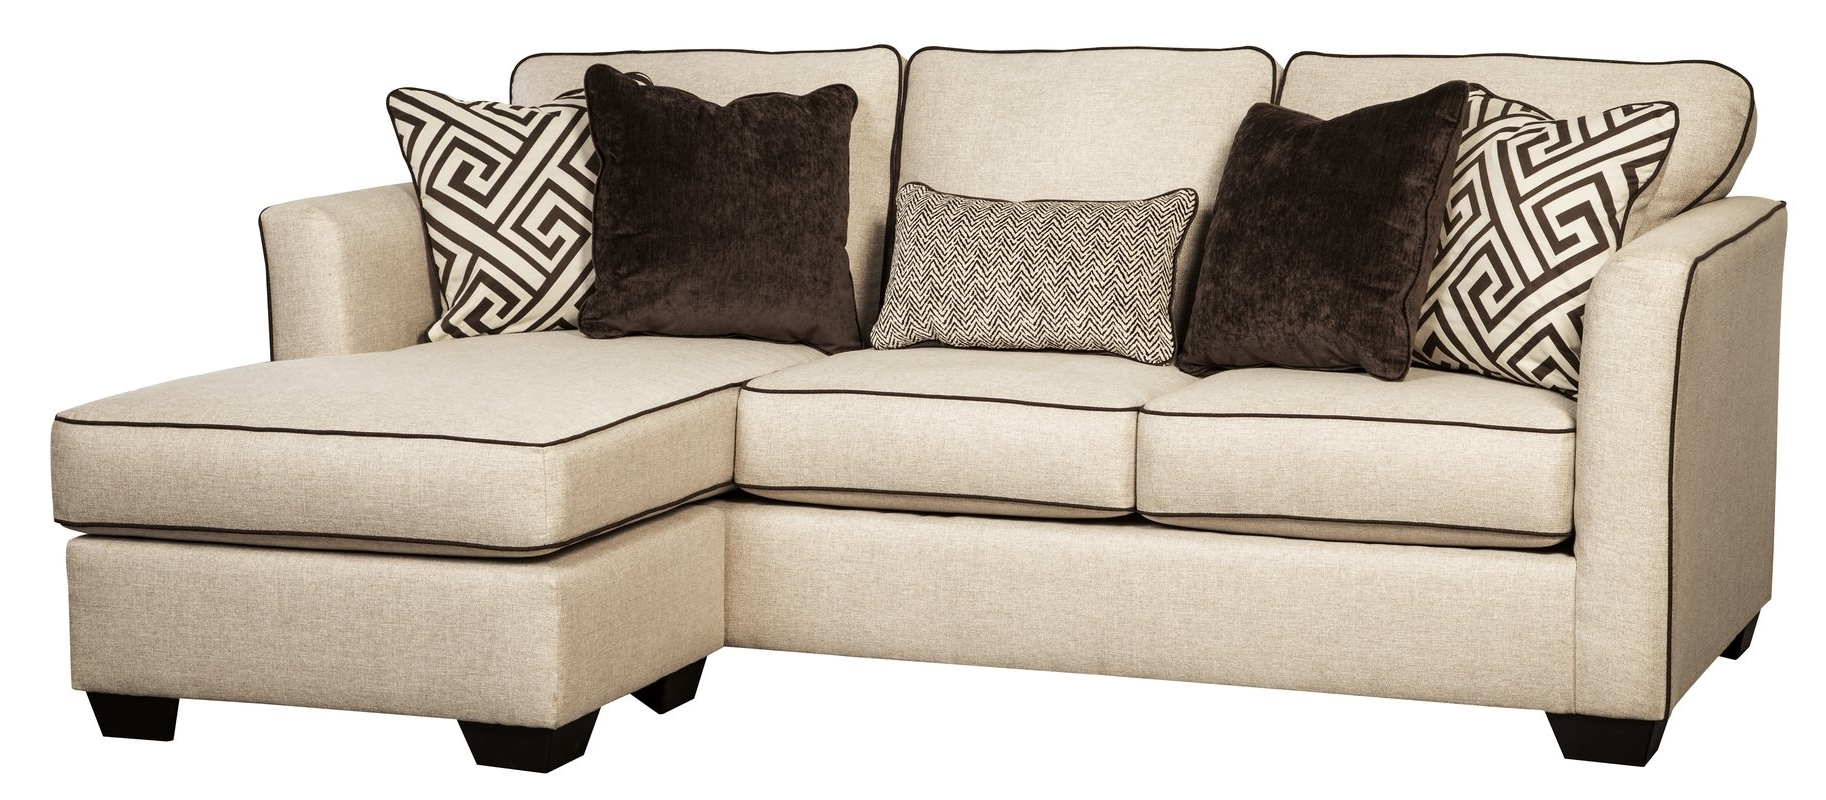 Wayfair Throughout Current Sofa Sleepers With Chaise (View 6 of 15)